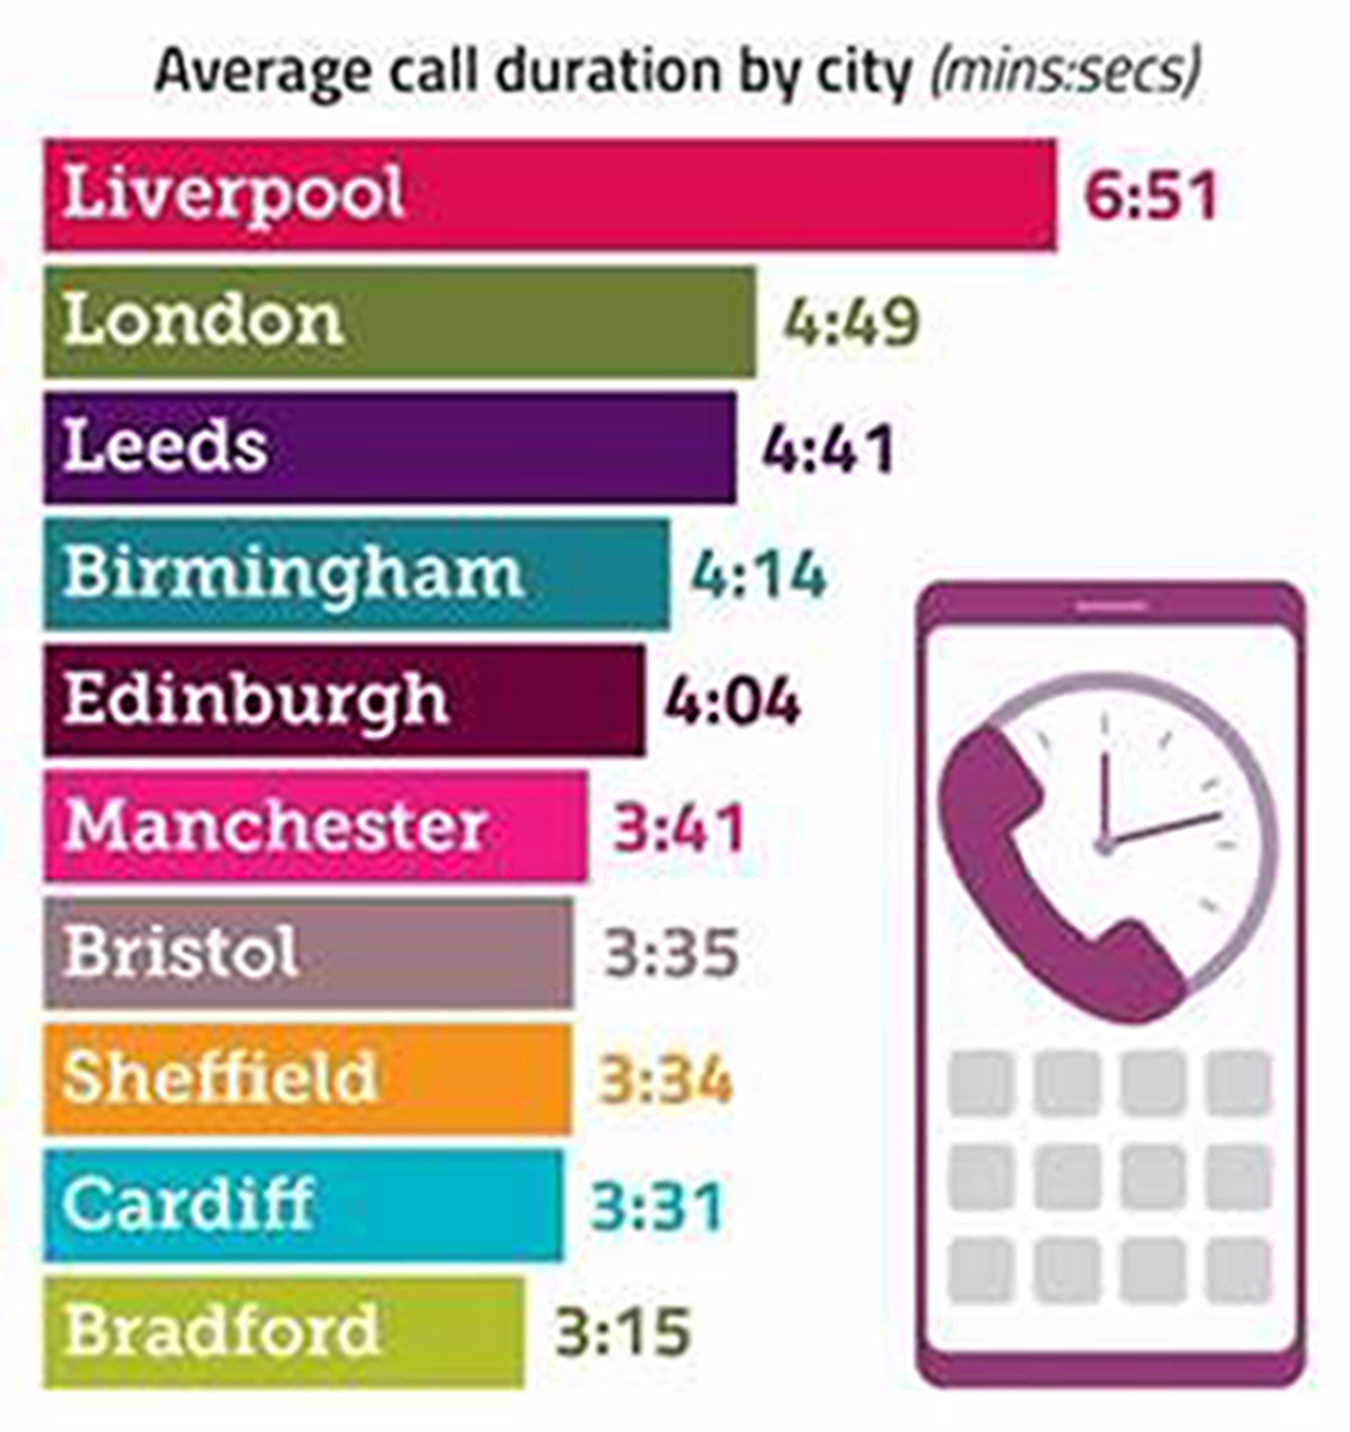 Ofcom Reveals Key UK Mobile Calling and Data Usage Trends